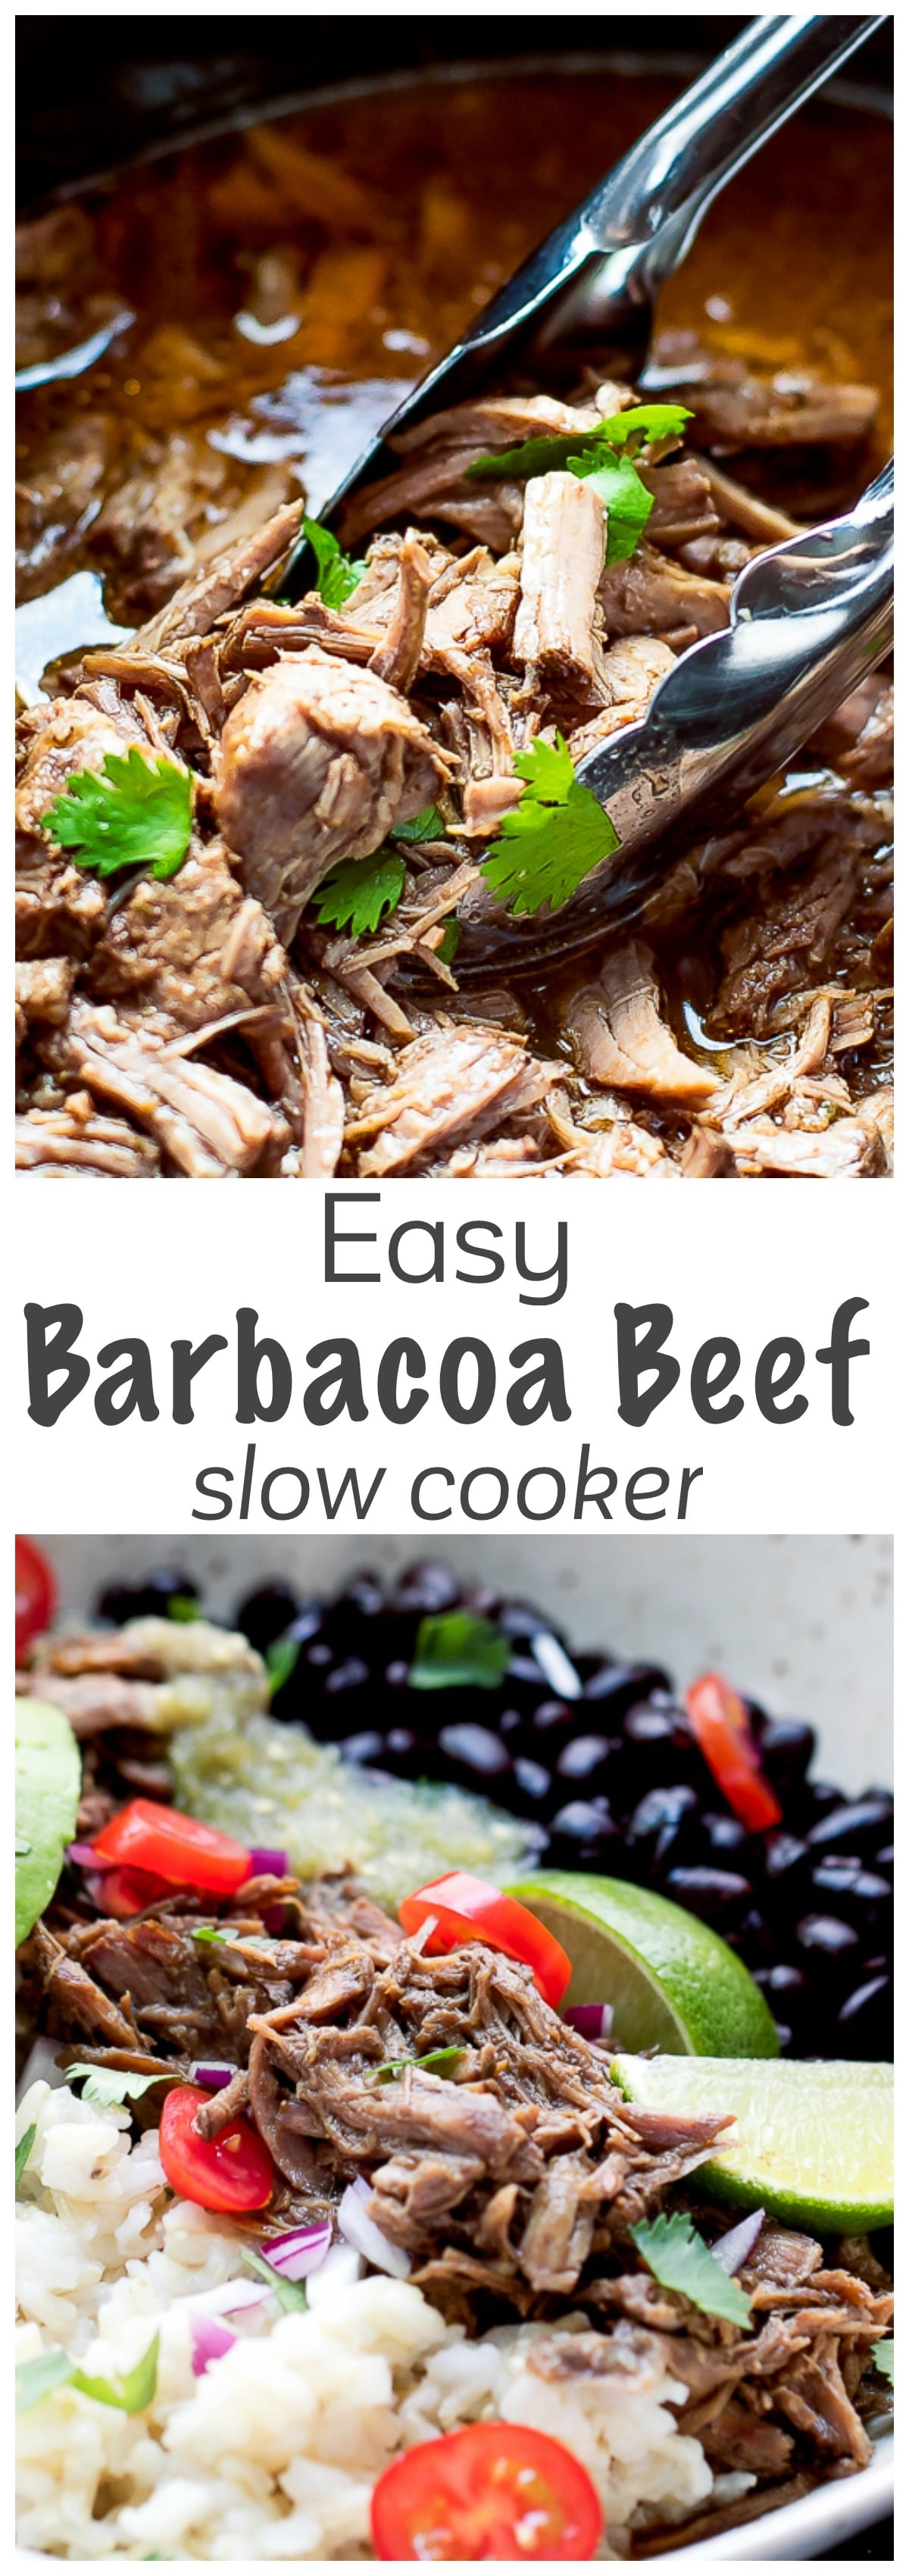 Easy Barbacoa Recipe Slow Cooker - tender slow cooked beef, easy to make, less expensive and tastier than the one I've had at a popular restaurant.